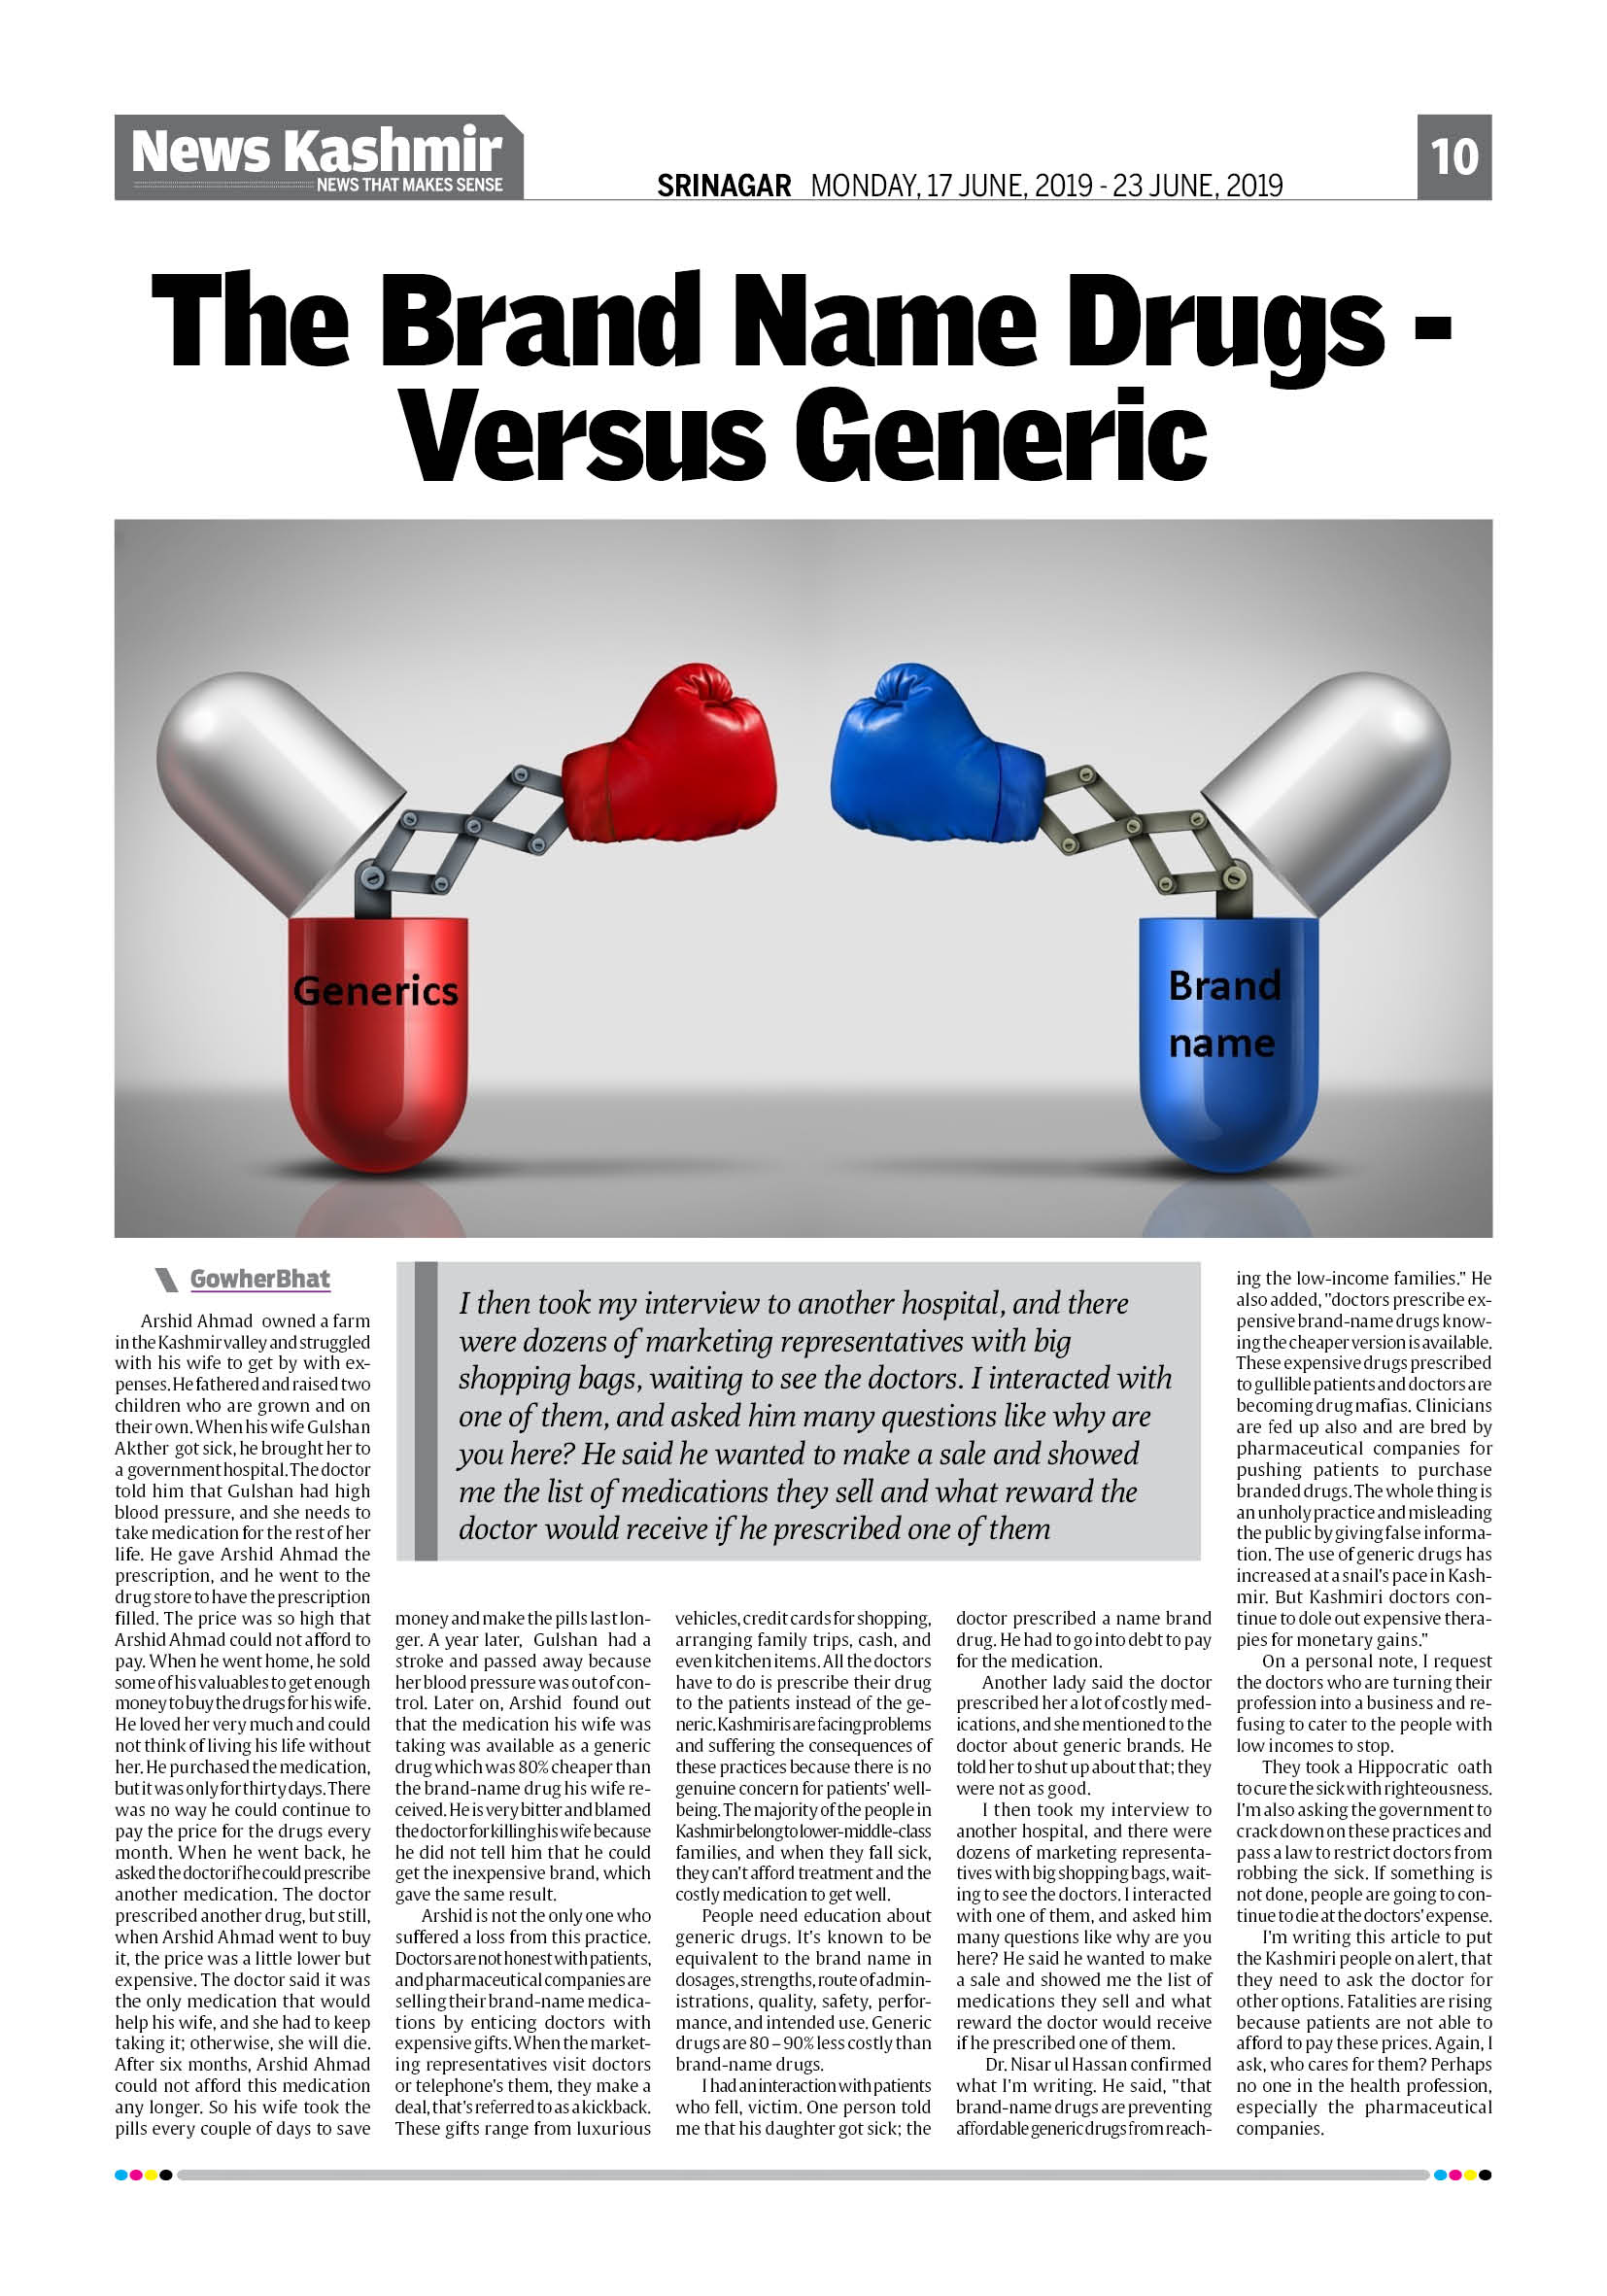 The Brand Name Drugs -Versus Generic